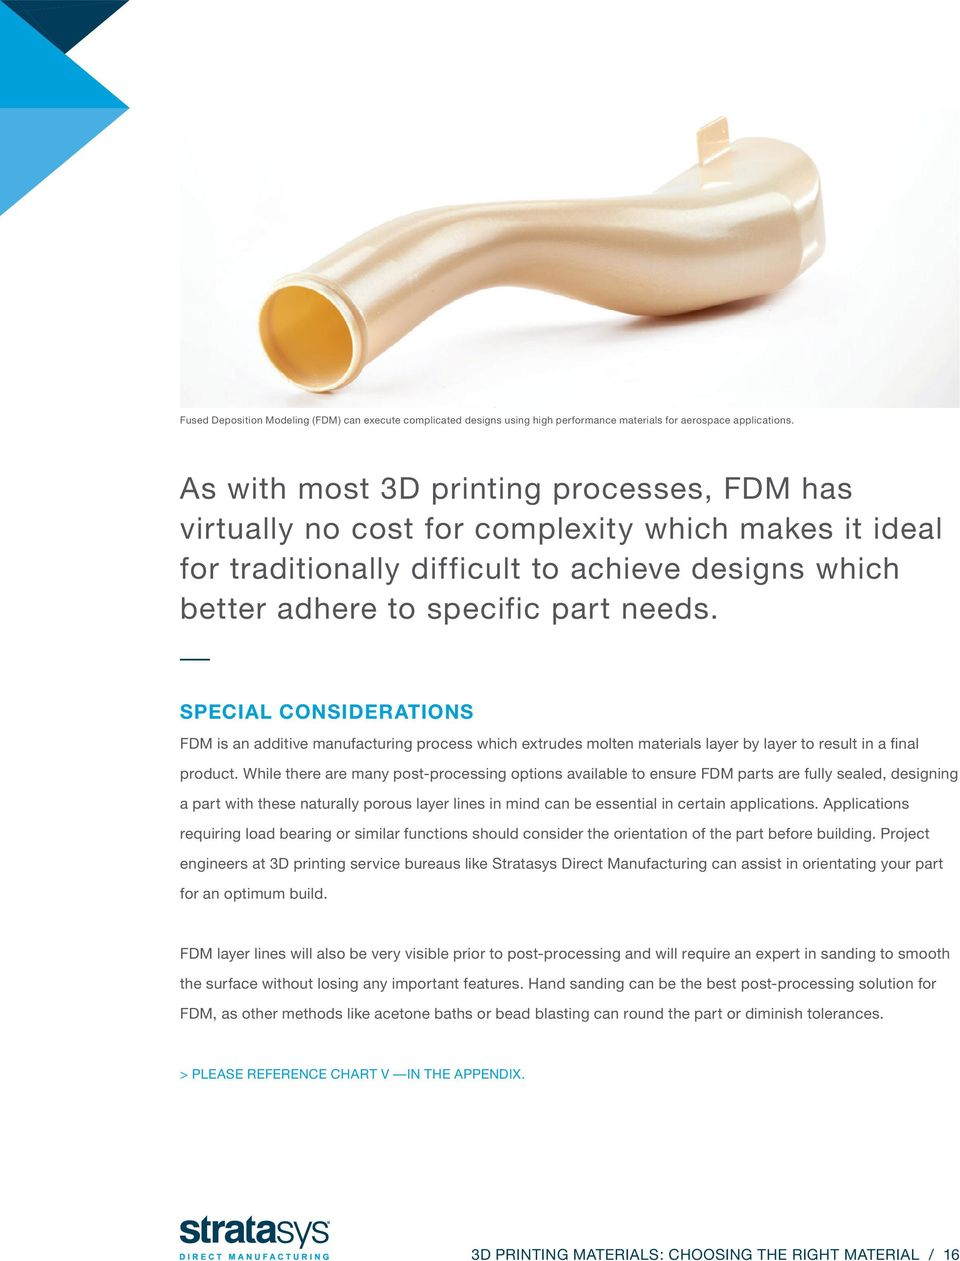 SPECIAL CONSIDERATIONS FDM is an additive manufacturing process which extrudes molten materials layer by layer to result in a final product.